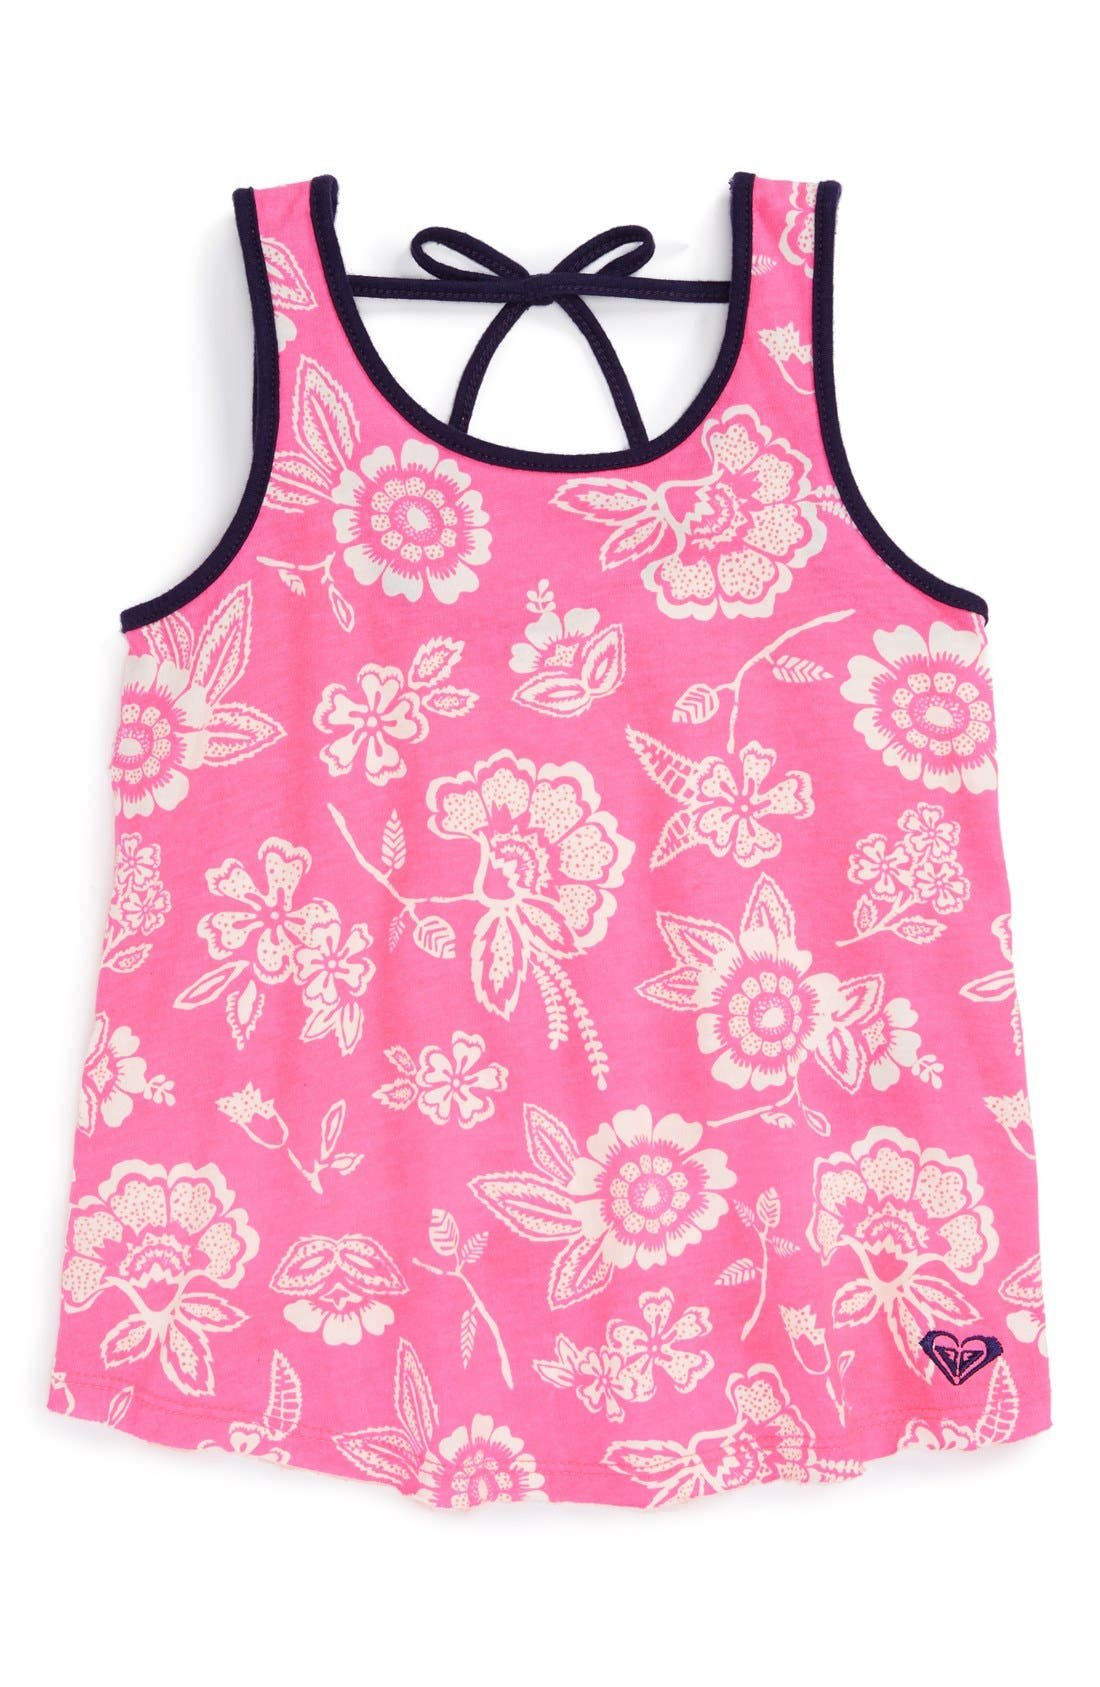 Alternate Image 1 Selected - Roxy 'Clear View' Sleeveless Top (Toddler Girls)